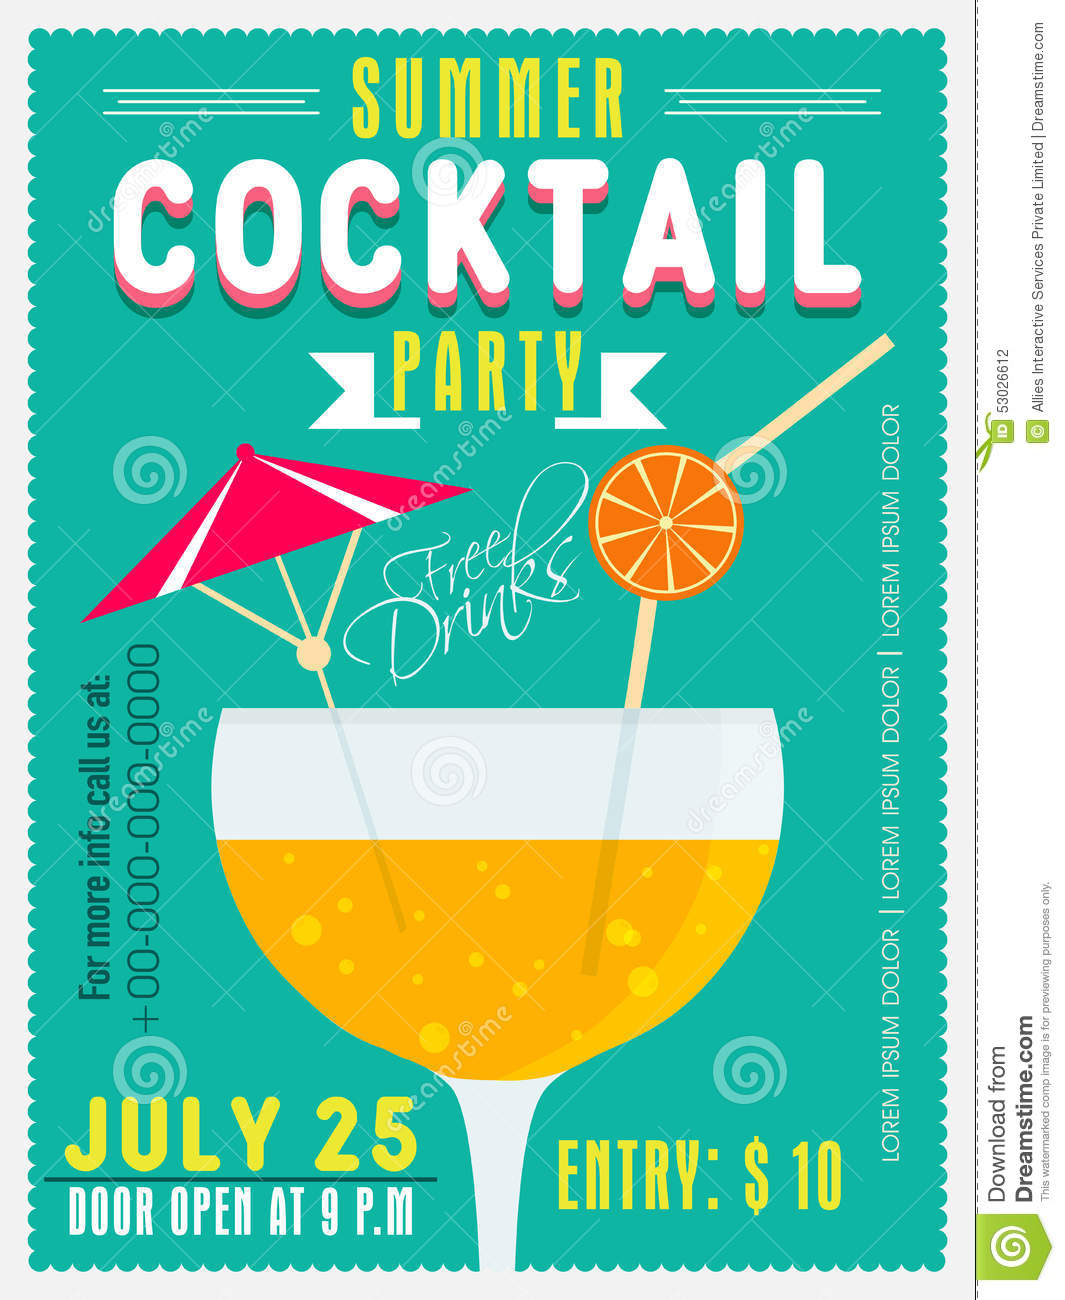 Cocktail Party Invitations as good invitations design